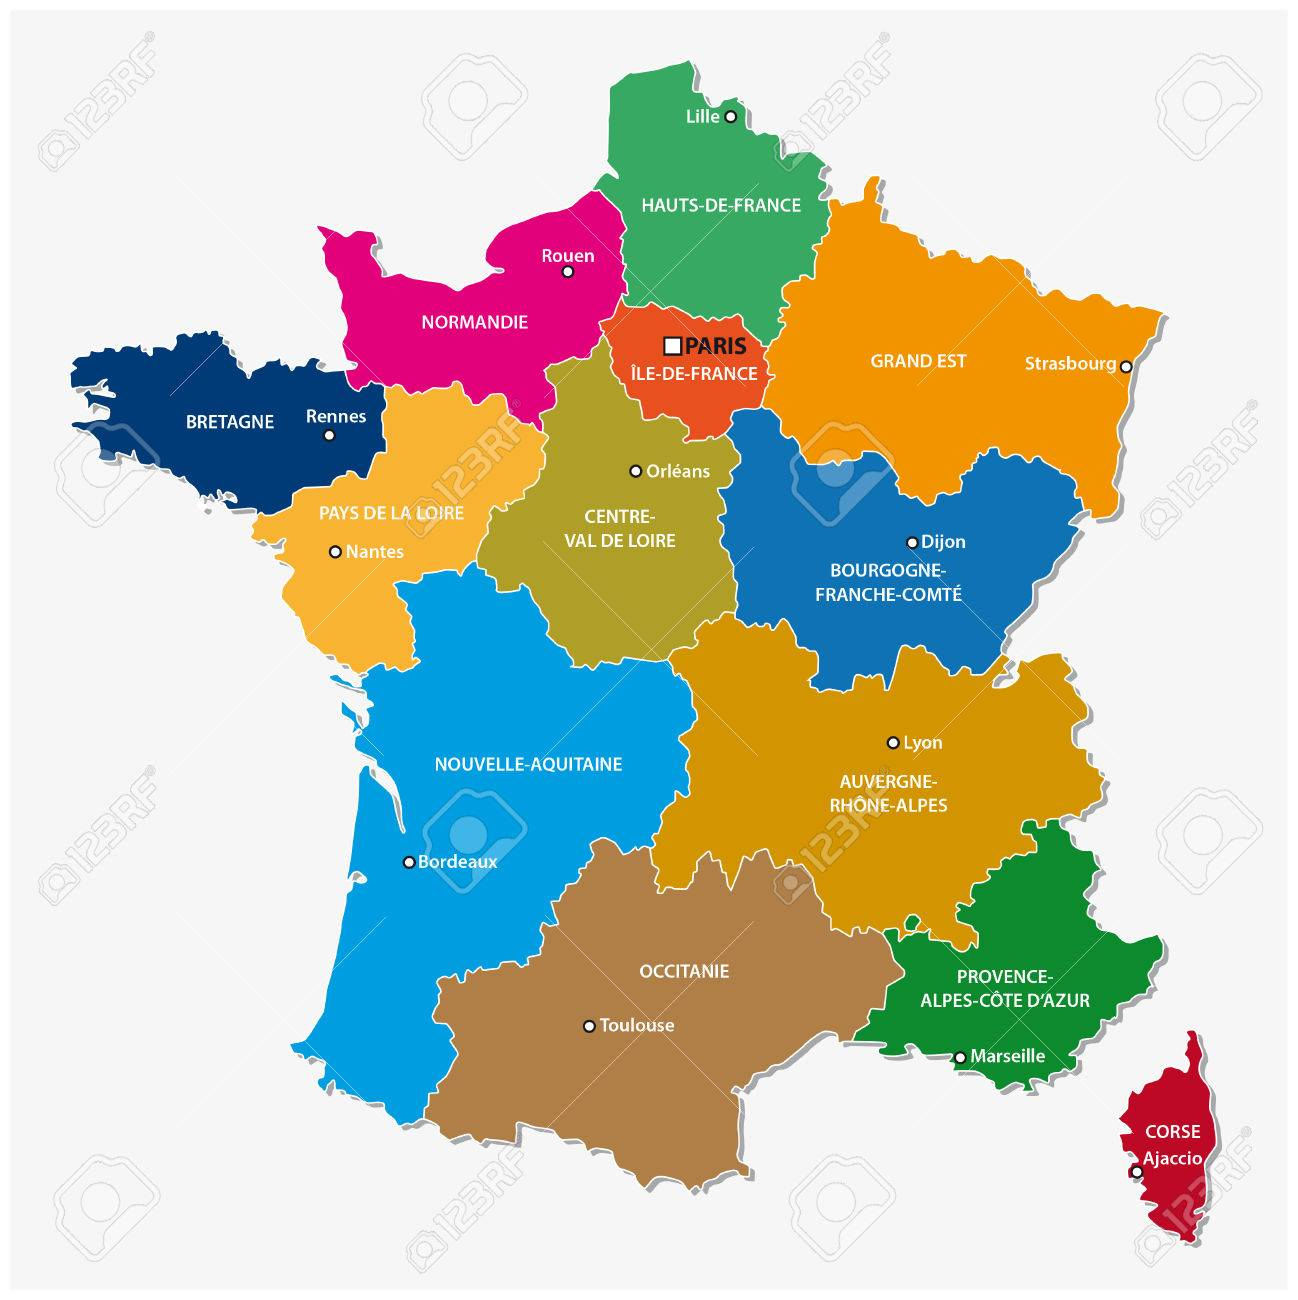 Administrative Map Of The 13 Regions Of France Since 2016 Royalty